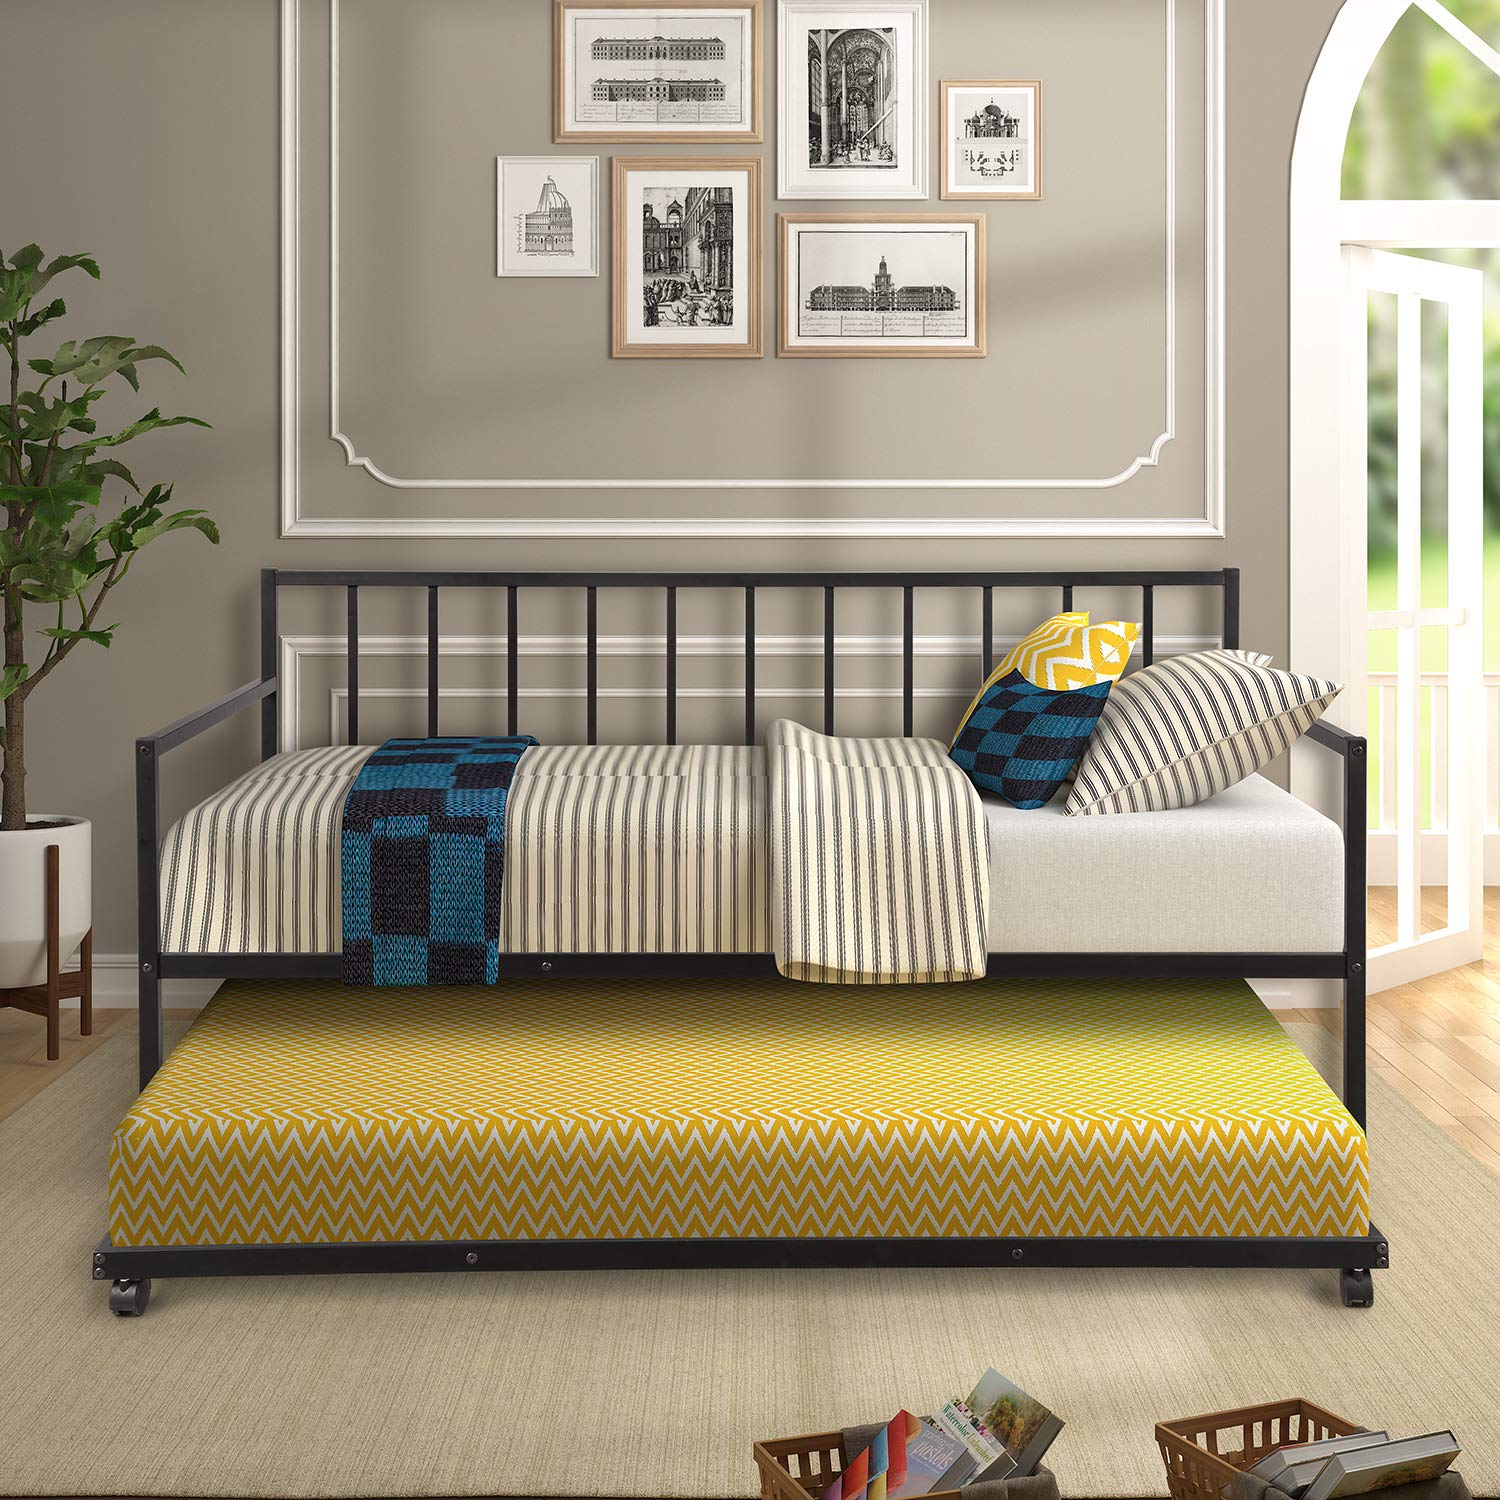 Avery Upholstered Platform Bed, 50 Tall Headboard, Nickle Finish Nail-heads, Strong Wood Slats, Wood Feet, Designed to Work with Adjustable Beds, Solid Rails, Midnight Blue Denim Color Fabric Queen